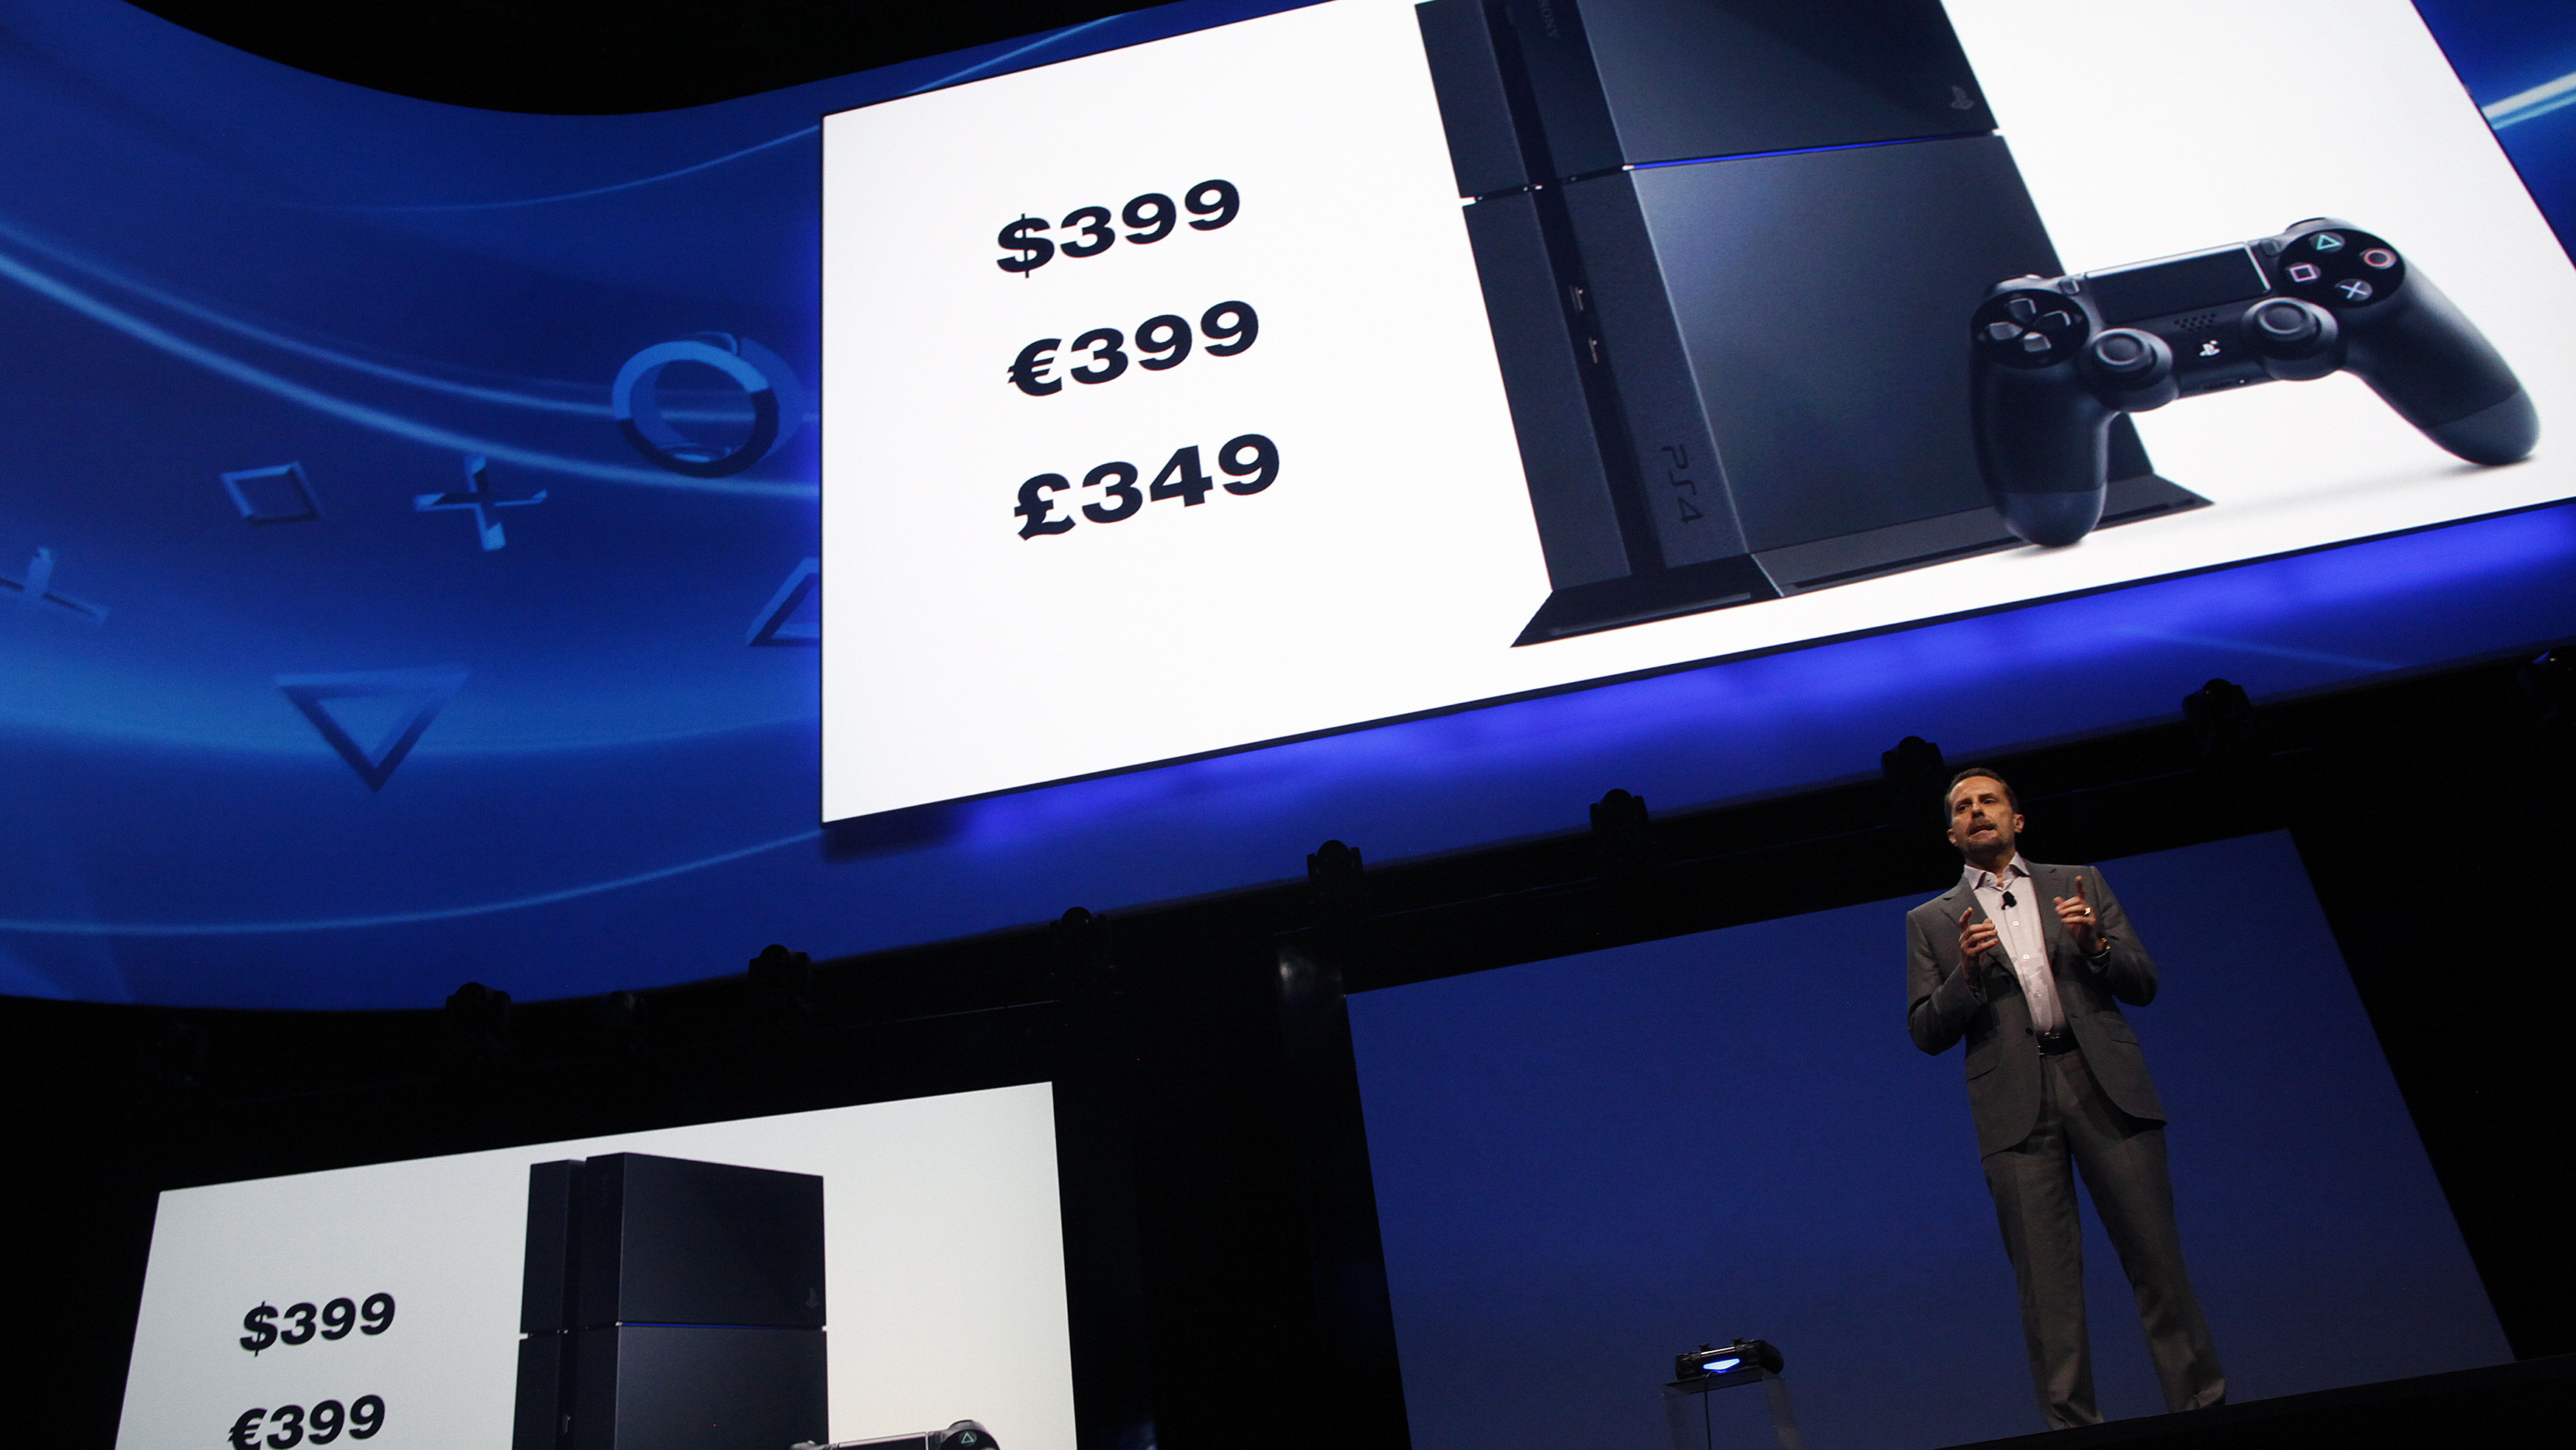 Sony Explains Why Its PlayStation 4 Costs $1,845 In Brazil